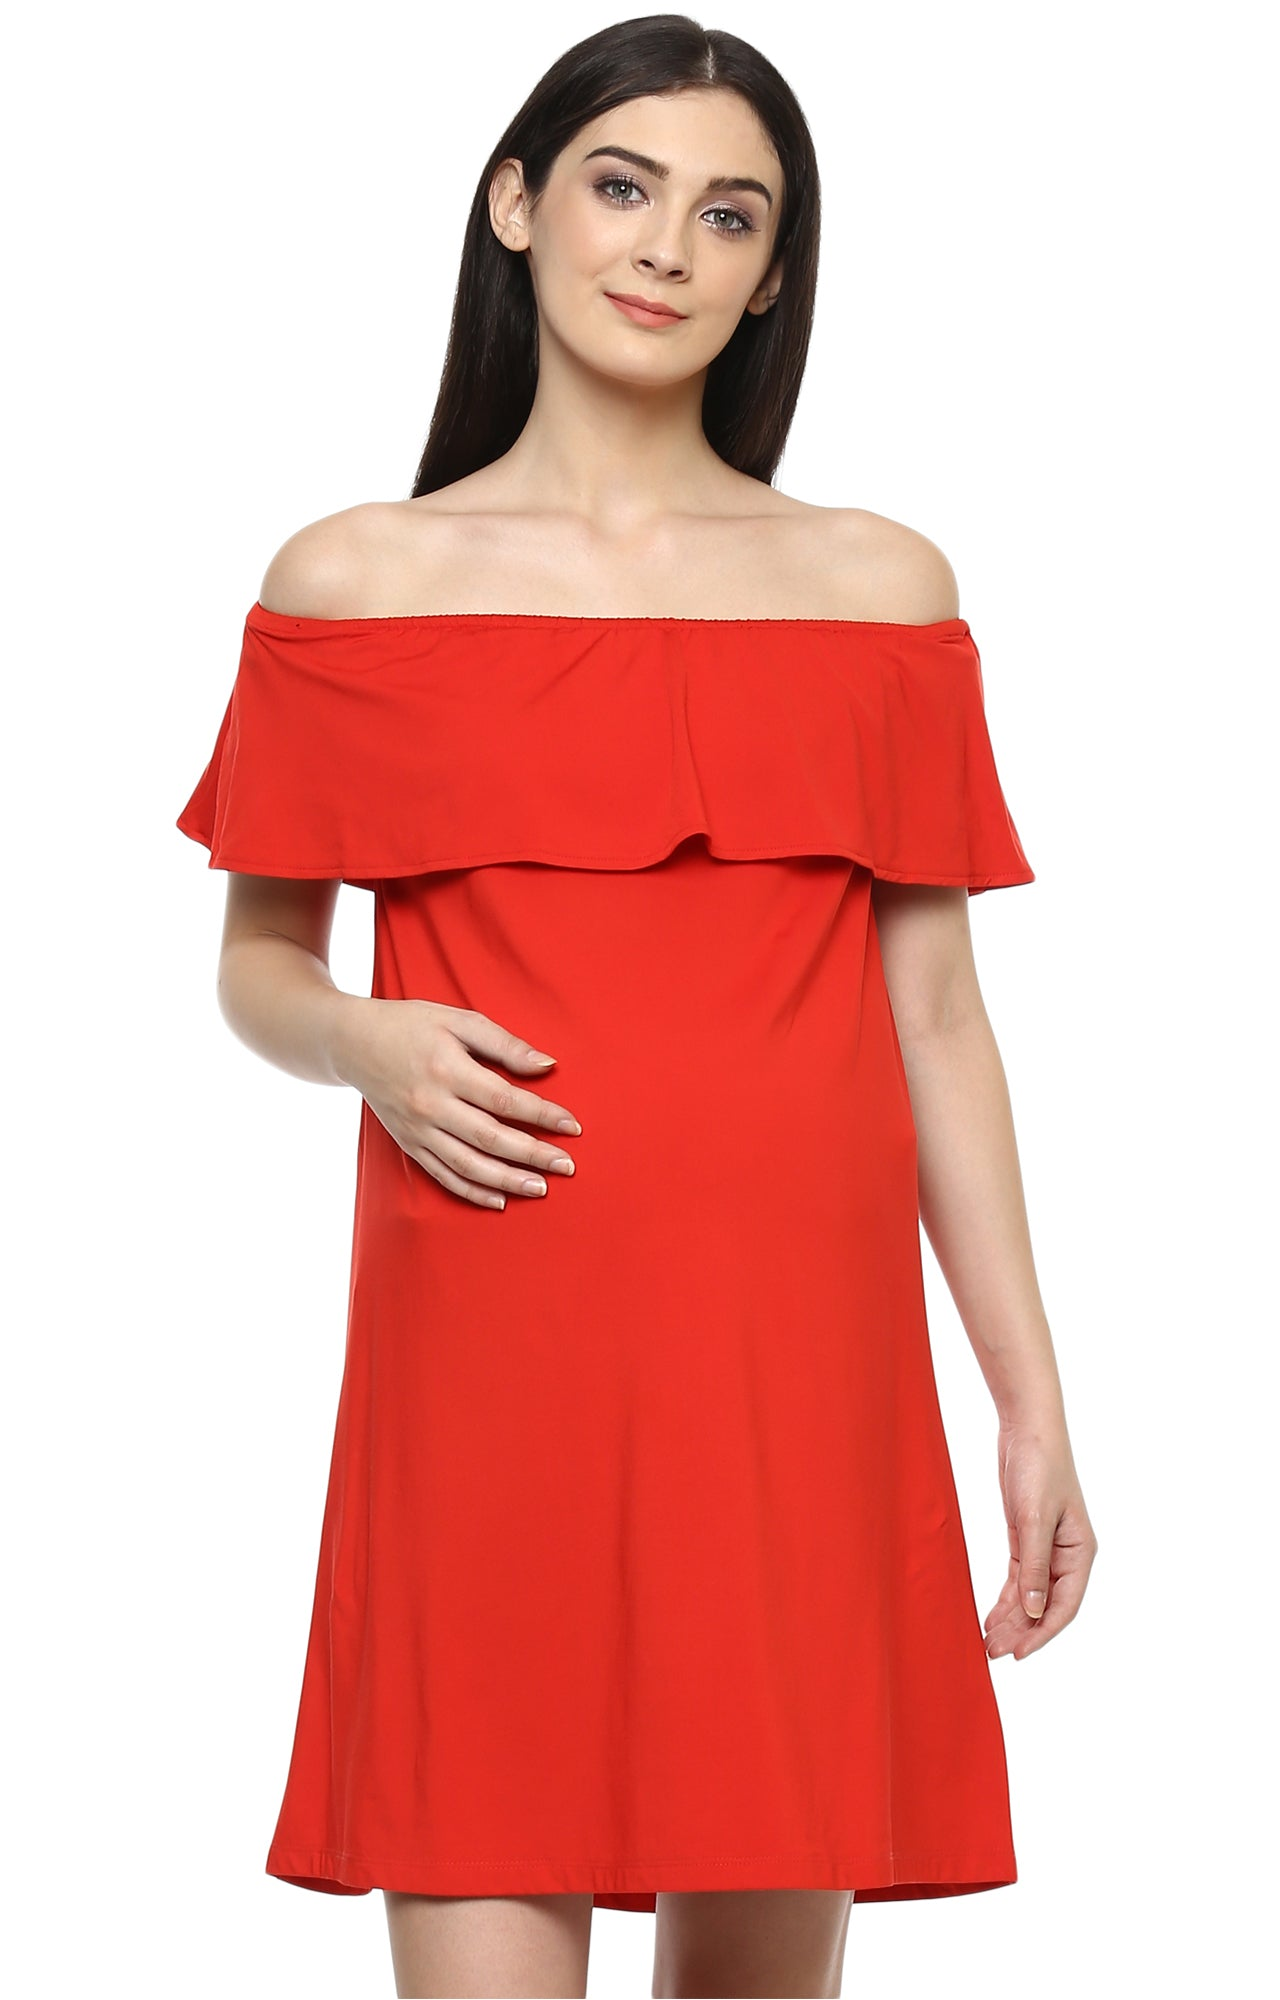 WITHOUT SLEEVES OFF SHOULDER DRESS - momsoon maternity fashion wear